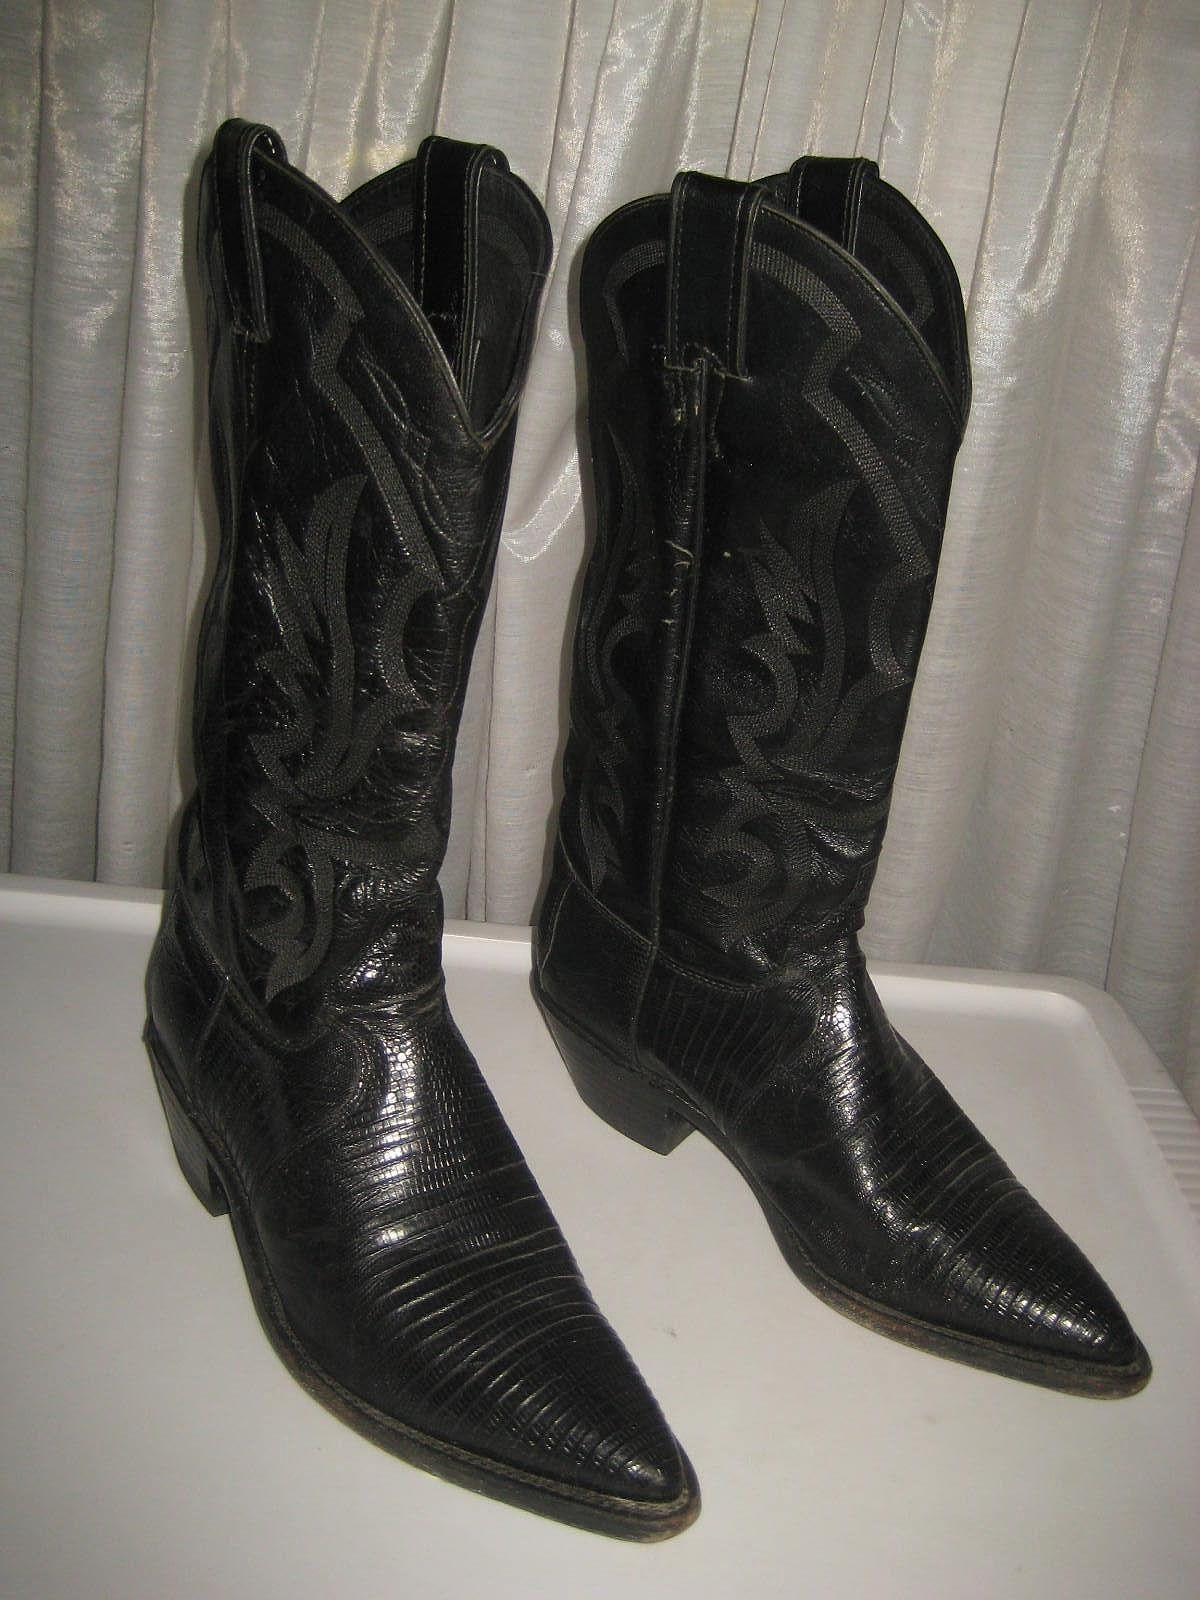 Justin Original Work-boots - Comfort & Safety since Shop the latest in industry-leading, safety footwear and apparel.